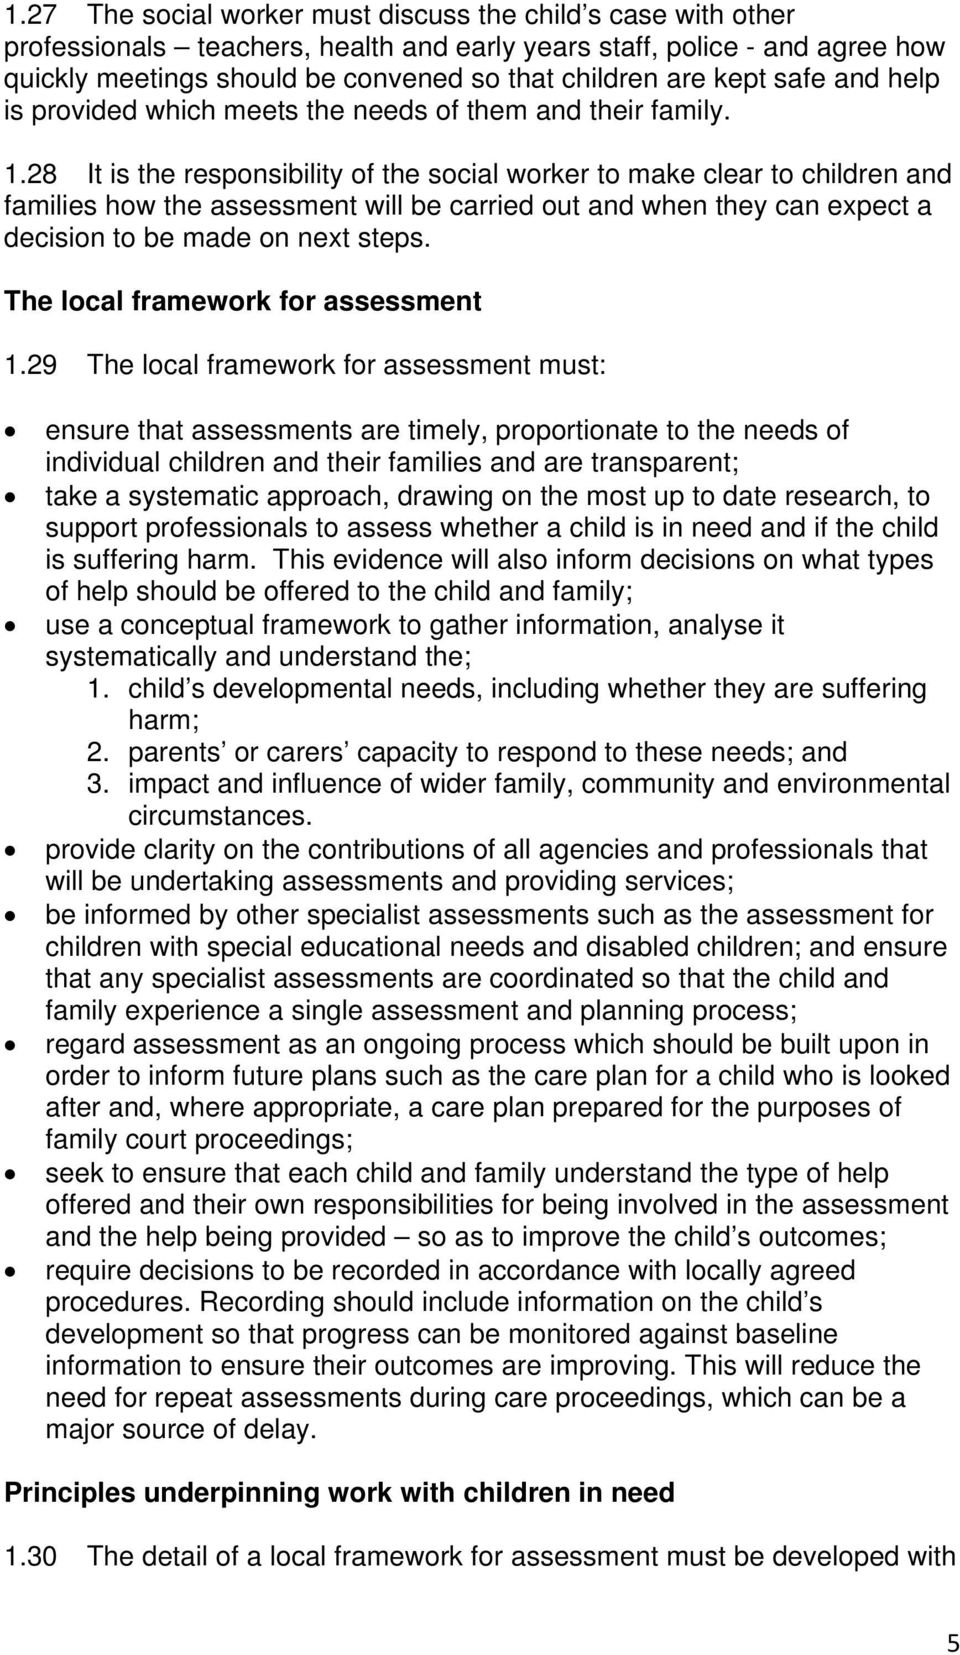 28 It is the responsibility of the social worker to make clear to children and families how the assessment will be carried out and when they can expect a decision to be made on next steps.